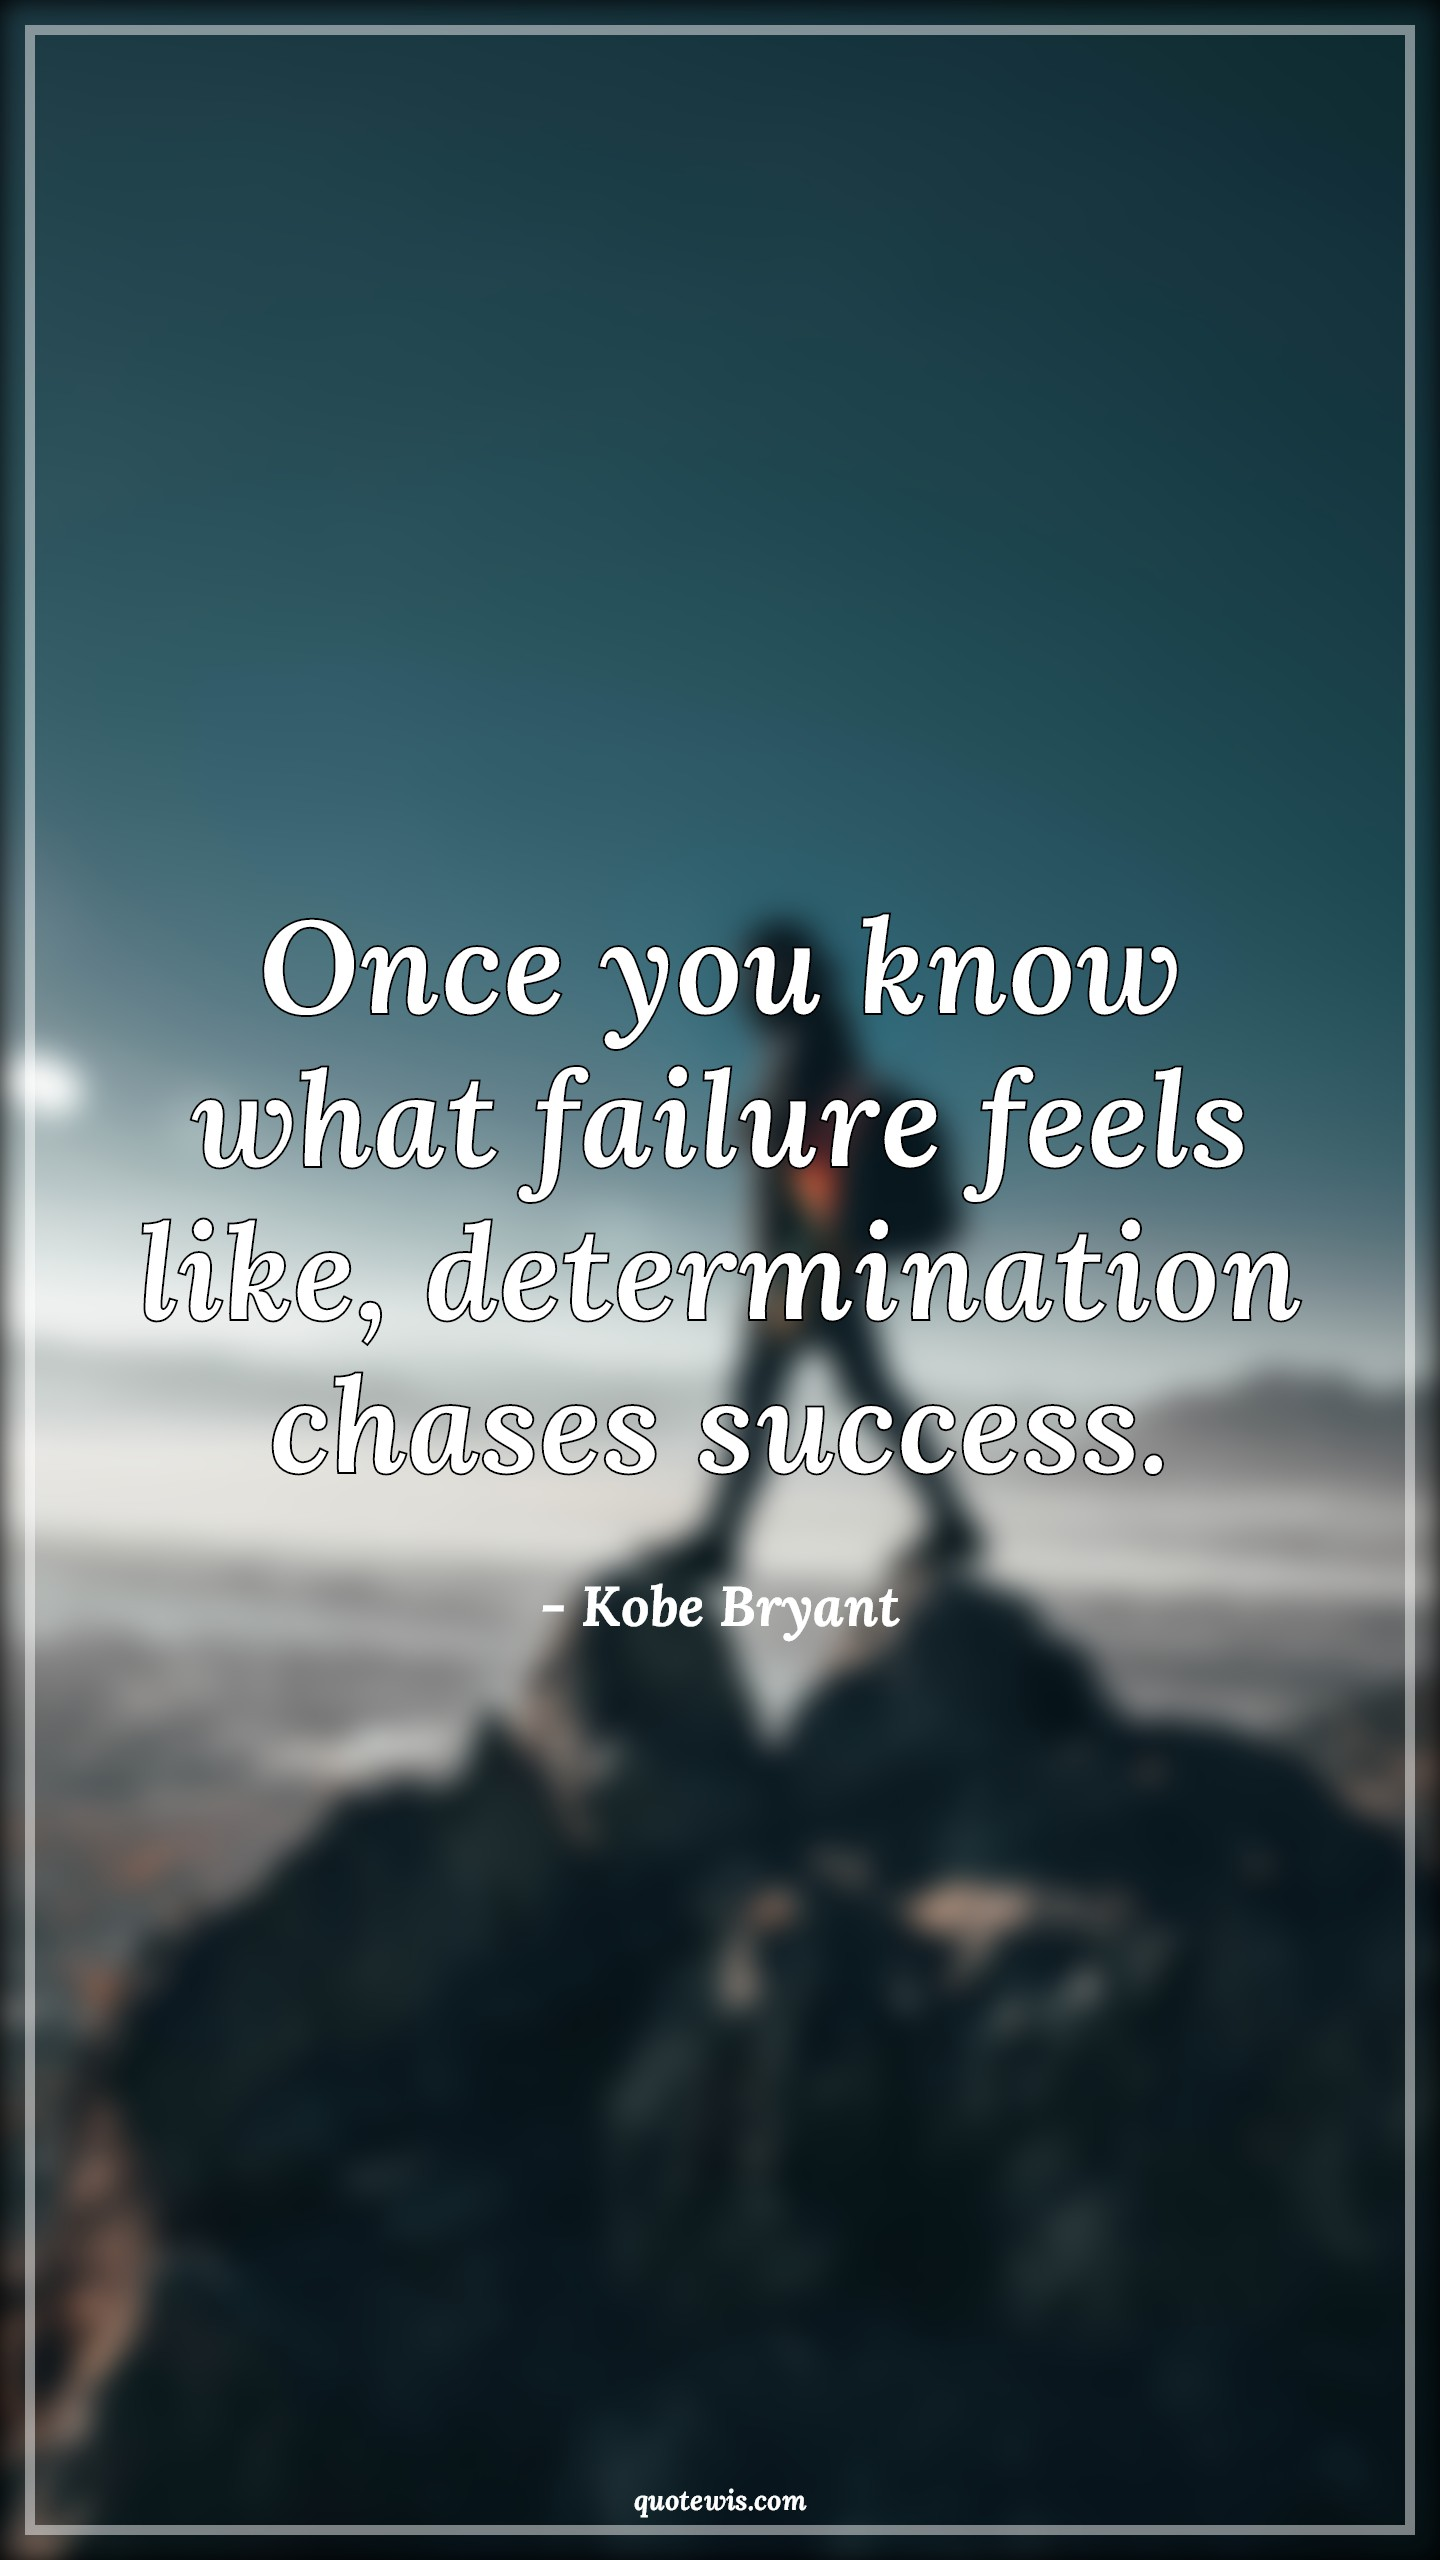 Once you know what failure feels like, determination chases success.